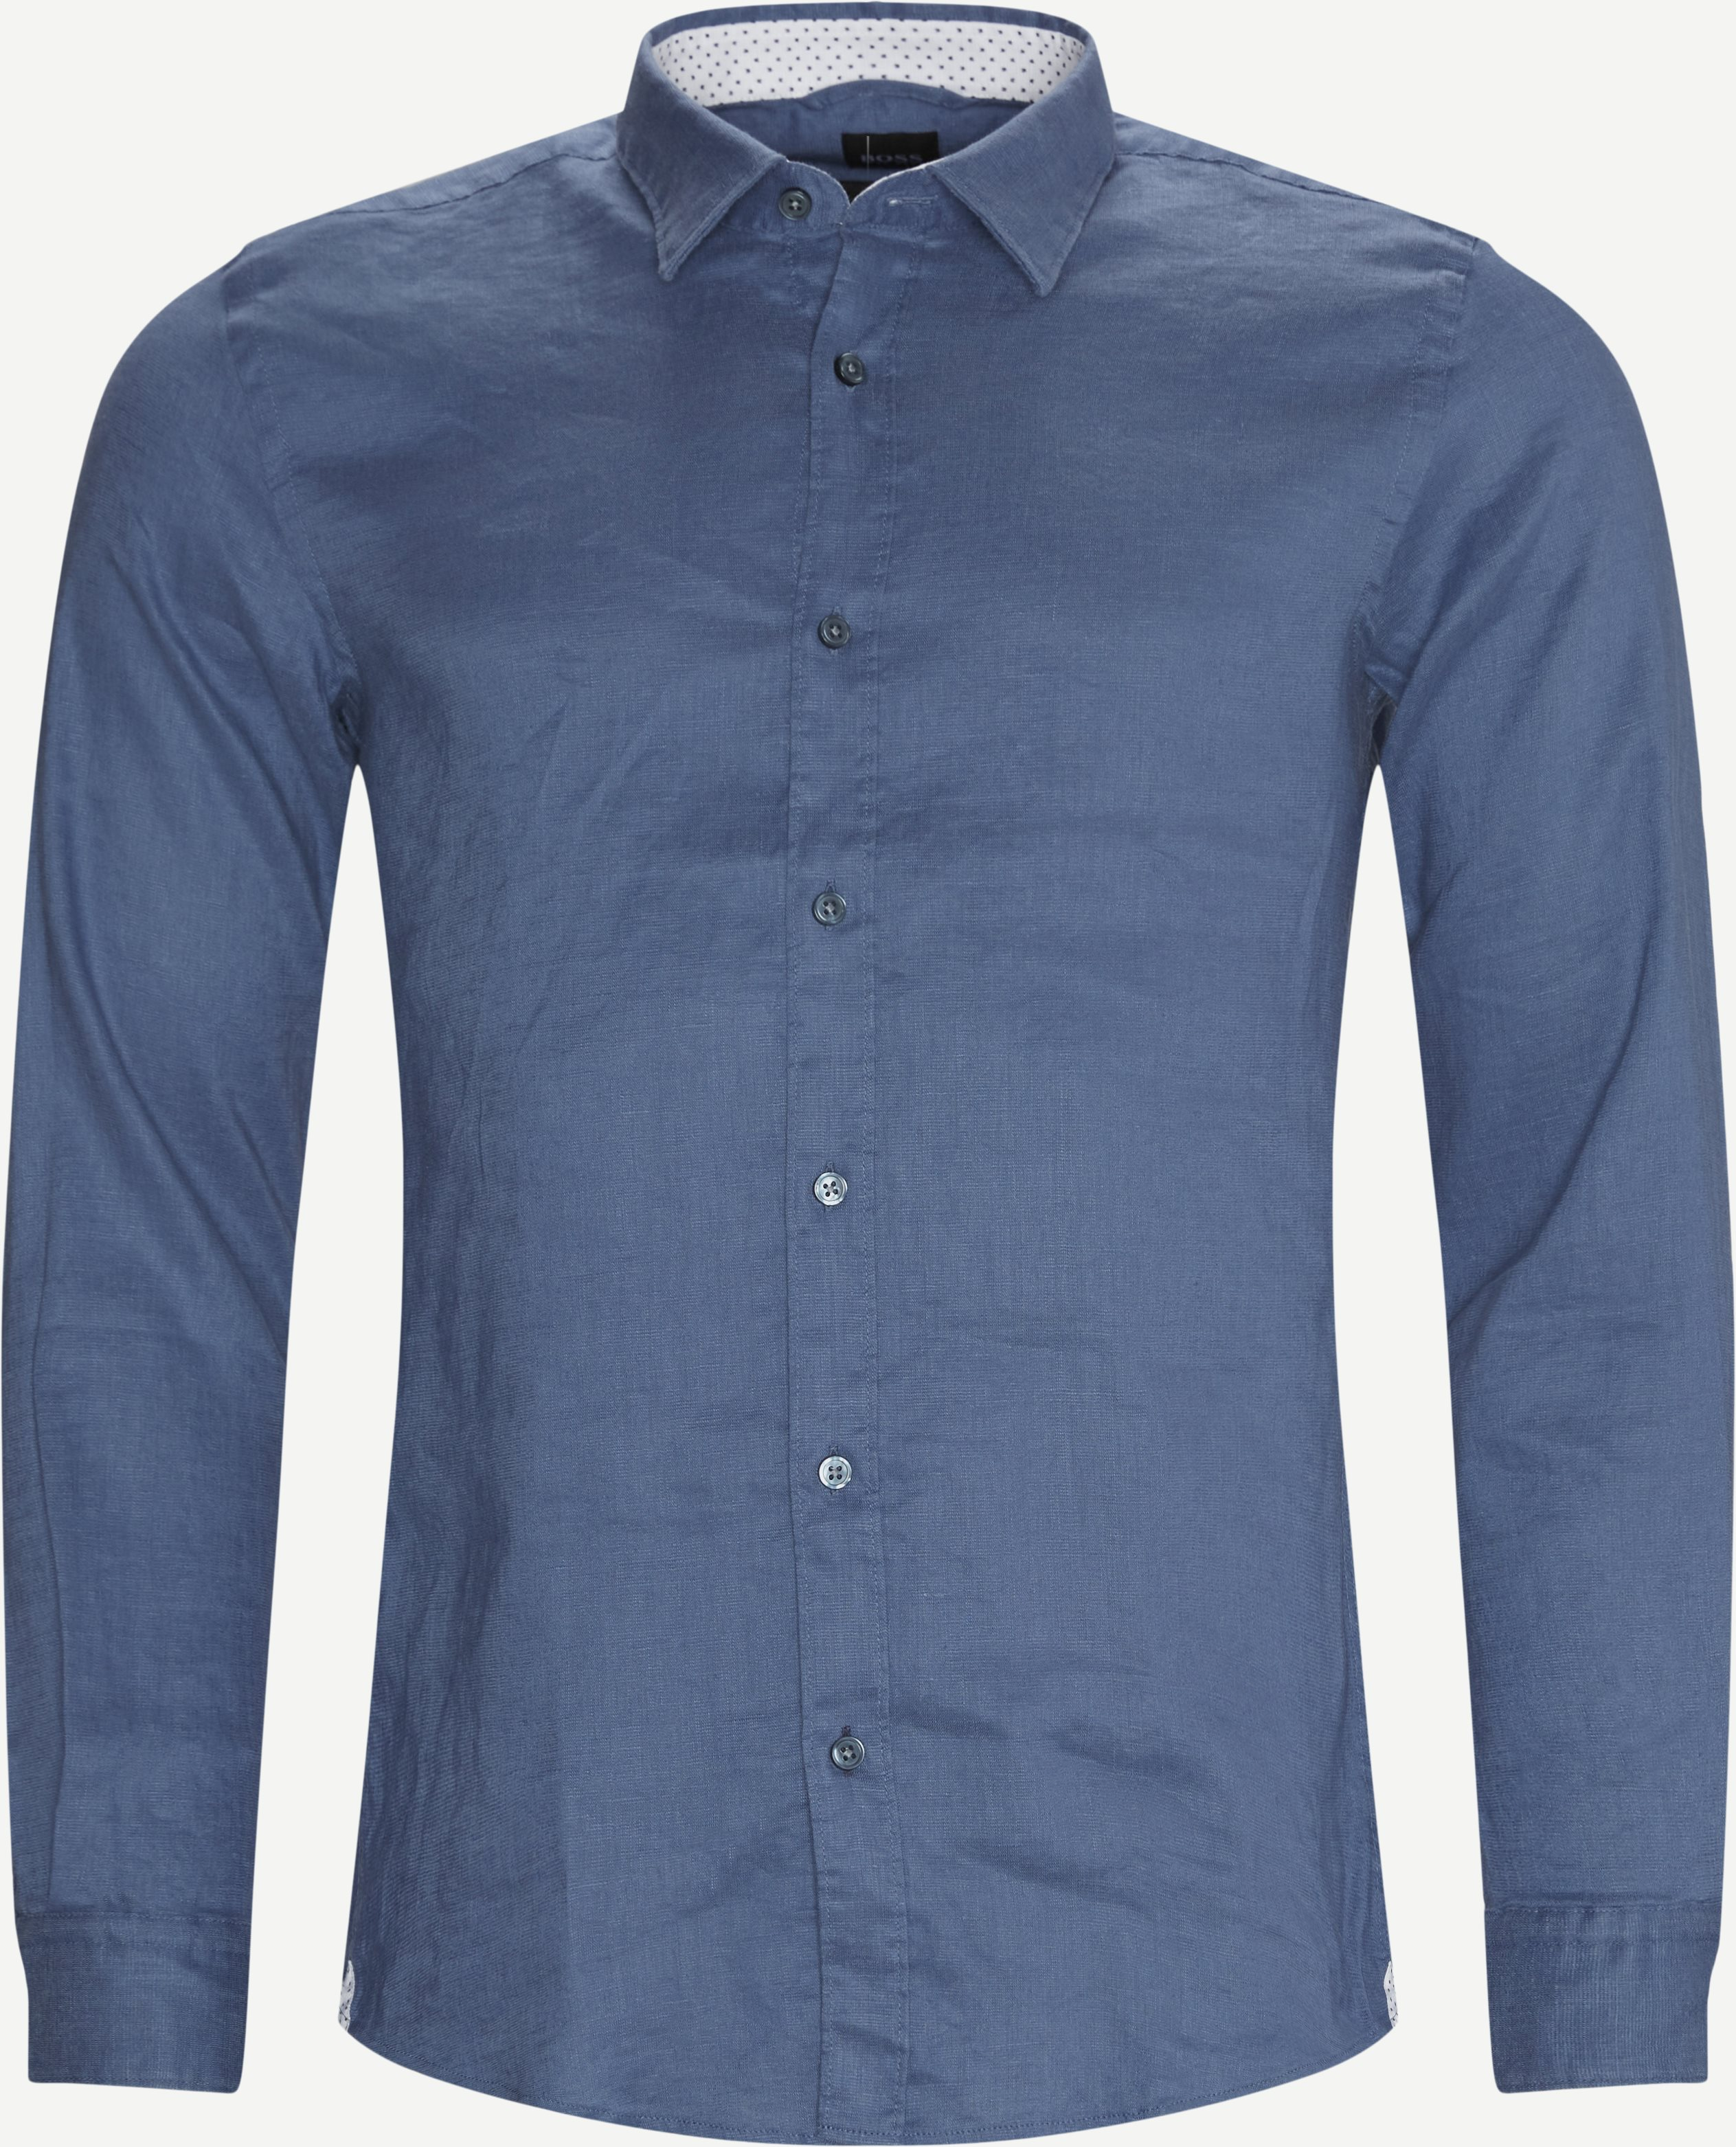 Ronni_53 Shirt - Shirts - Slim - Blue